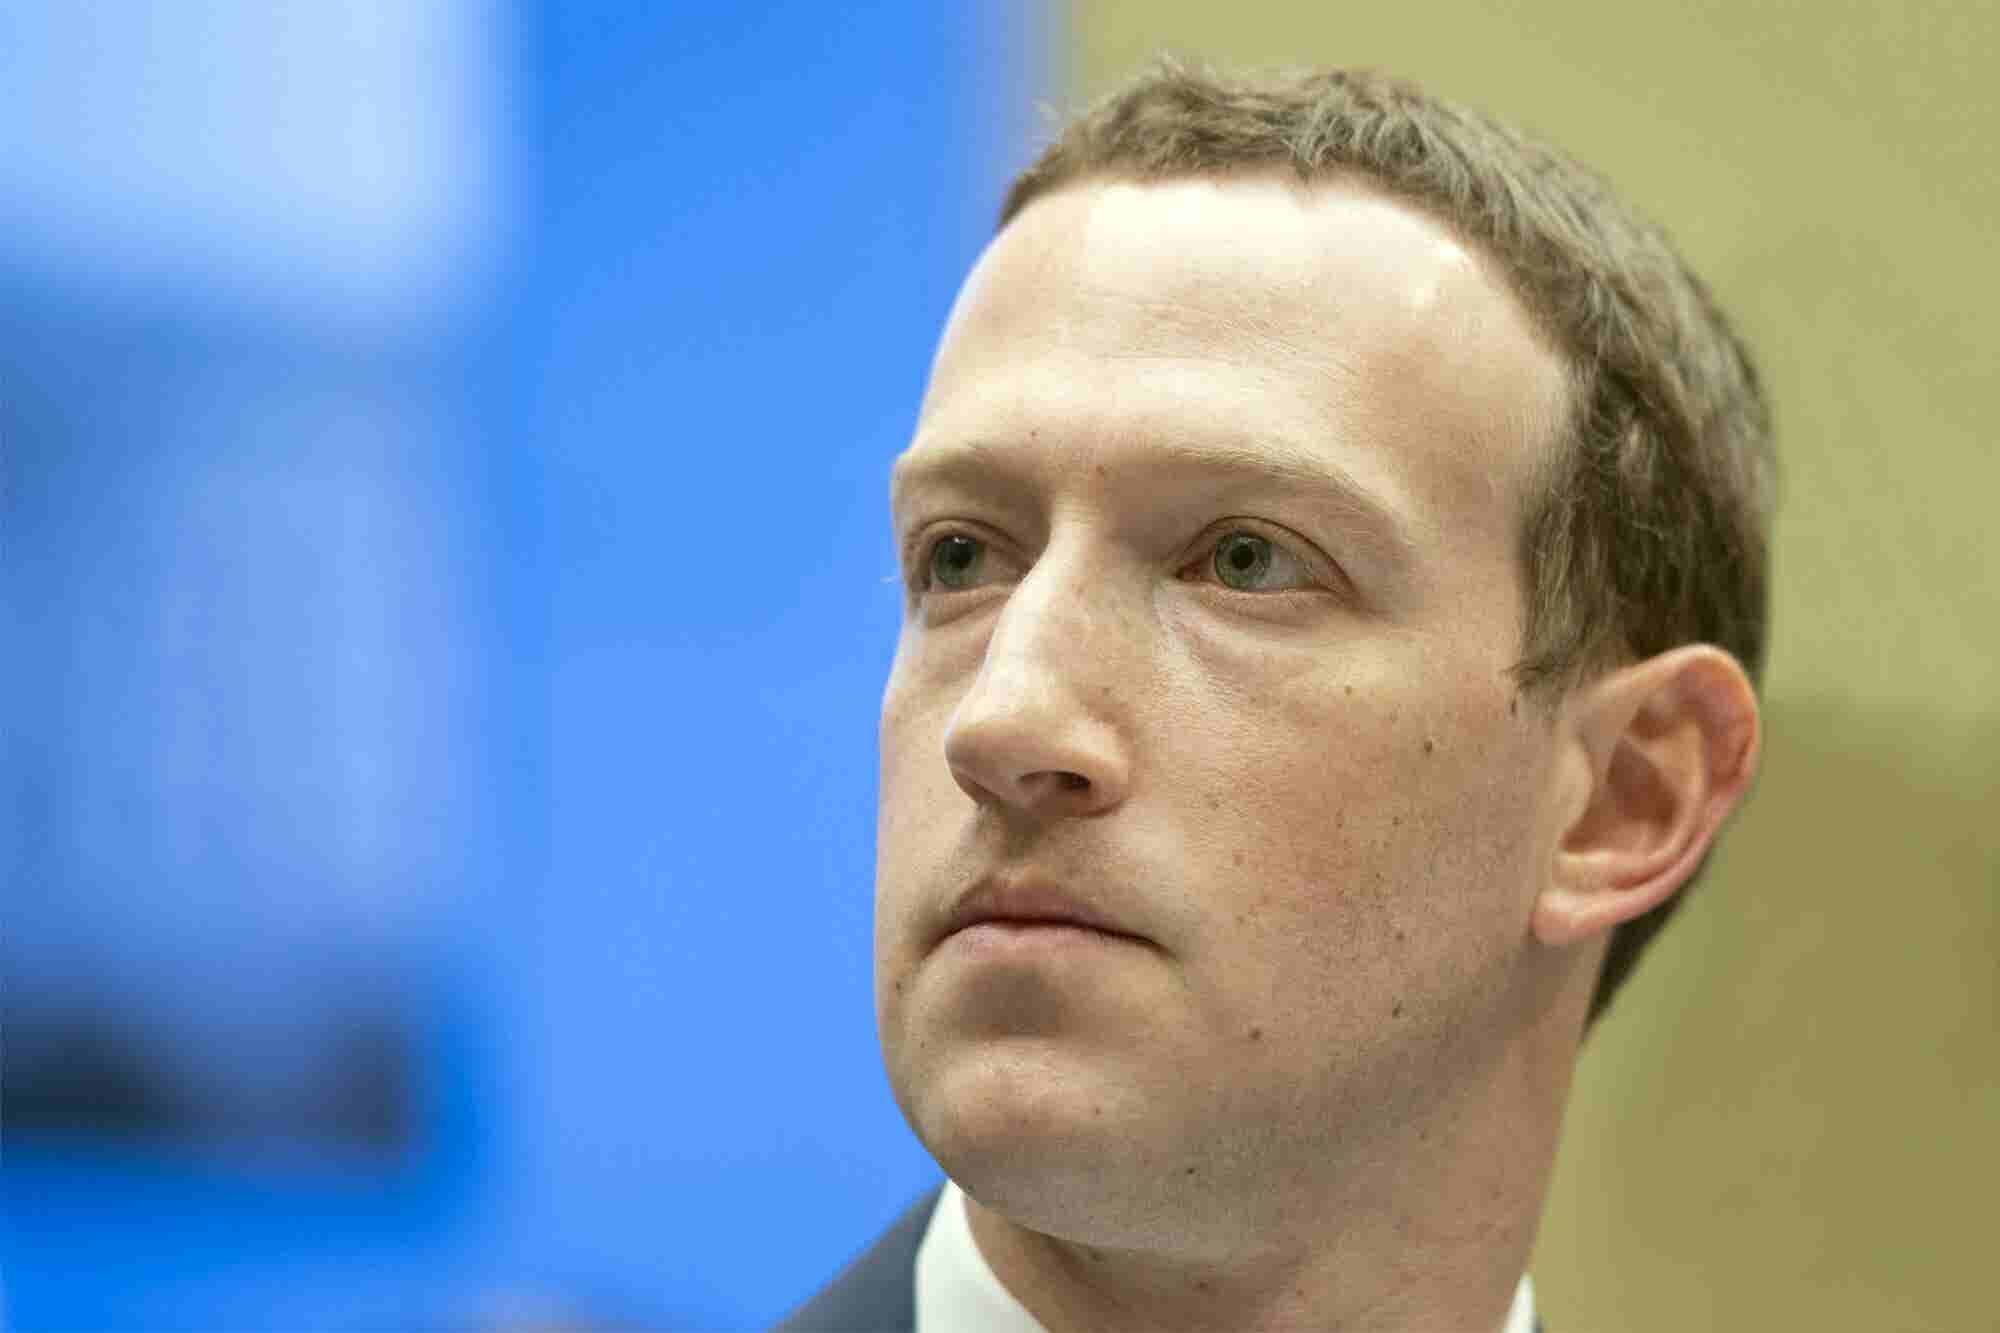 Hacker Says He'll Livestream Deletion of Mark Zuckerberg's Facebook Pa...